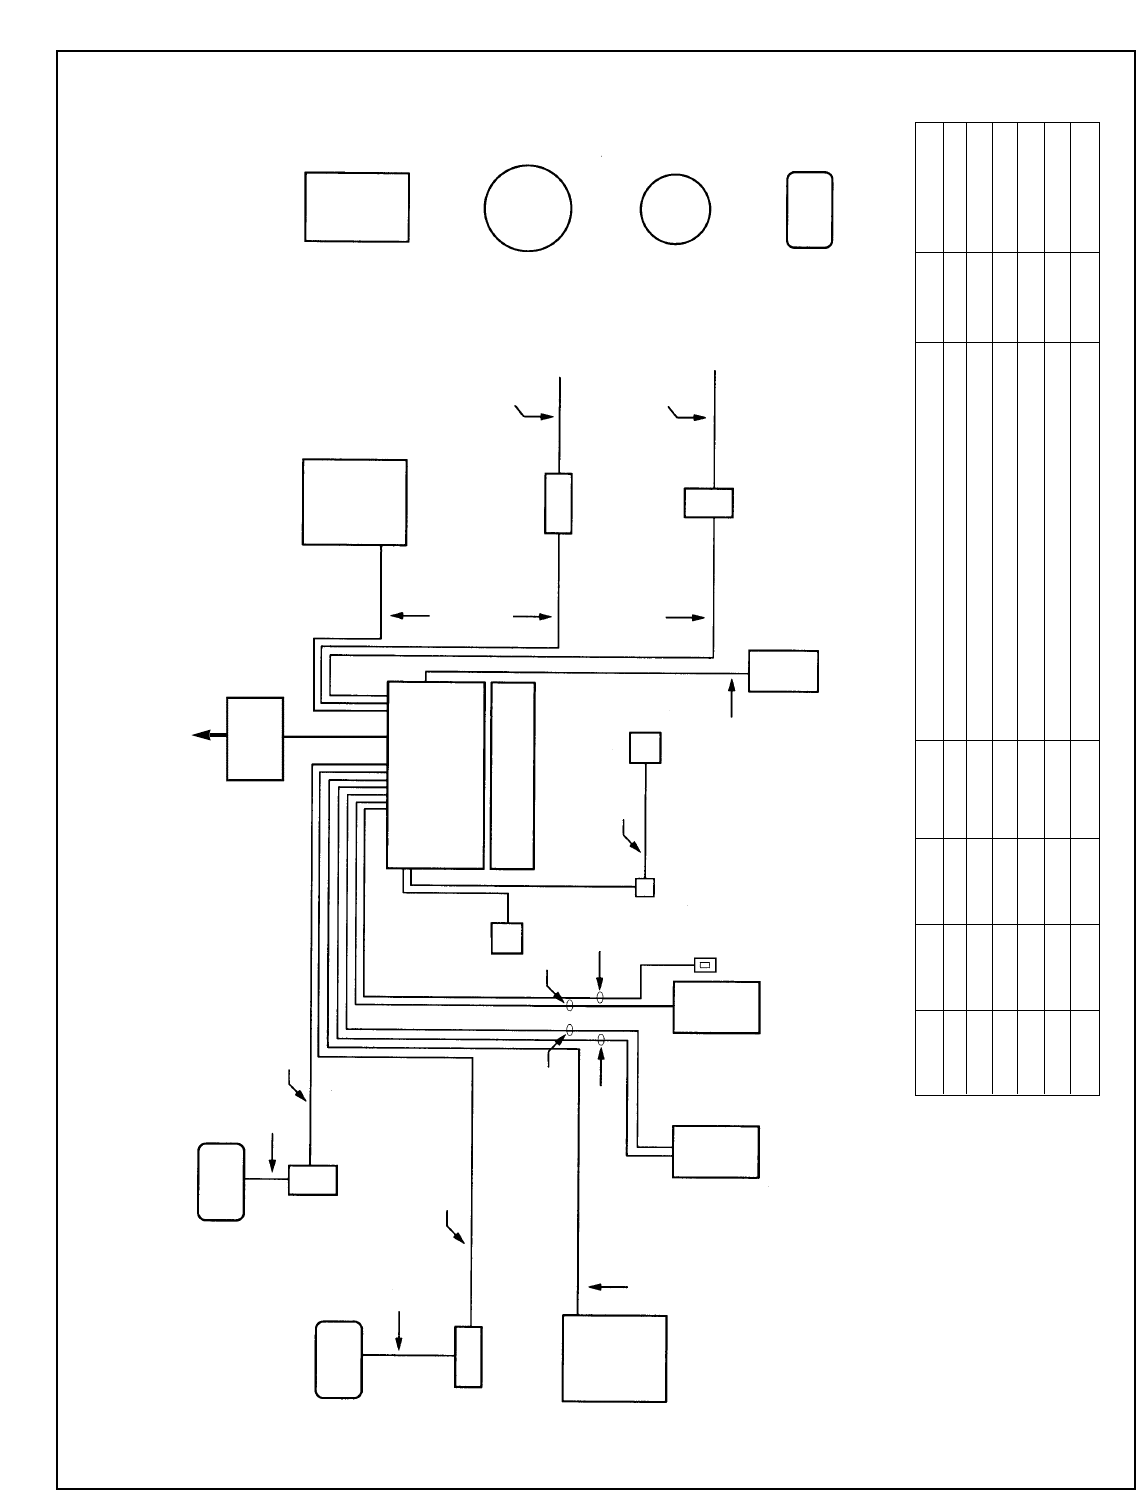 nutone intercom wiring diagram pdf nutone image page 16 of nutone intercom system im 3303 user guide on nutone intercom wiring diagram pdf